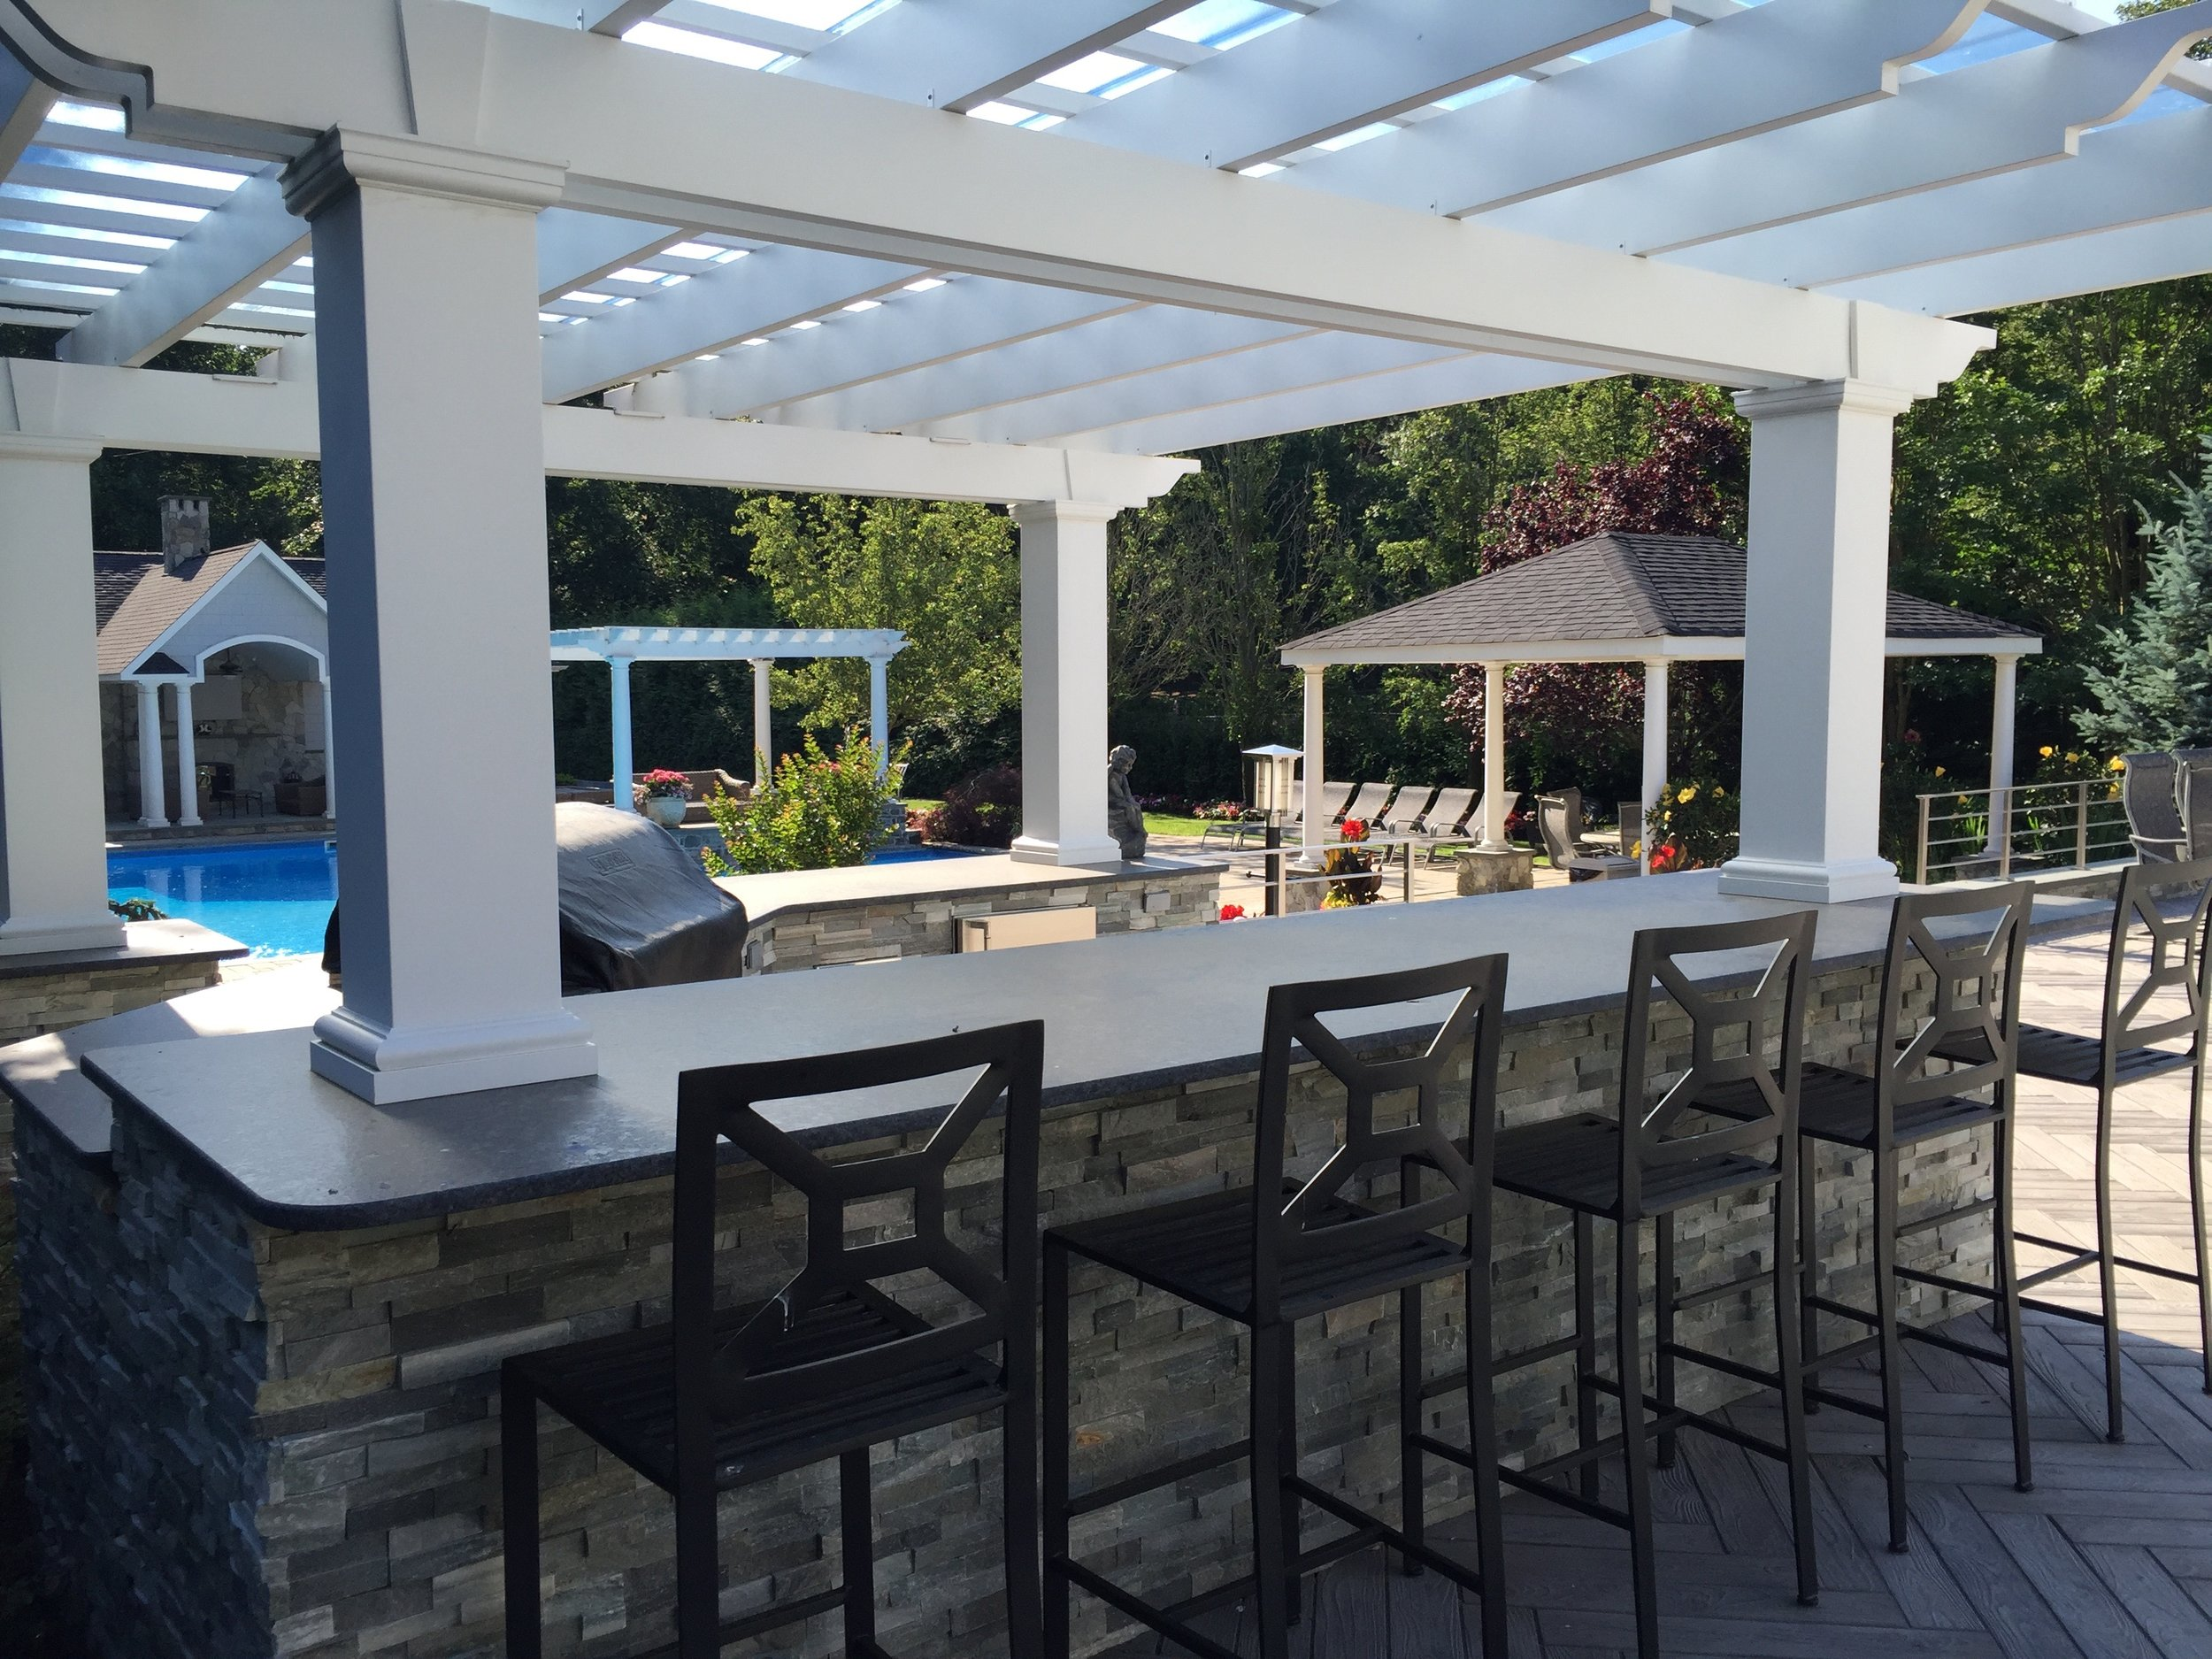 Professional outdoor kitchen pergola design company in Long Island, NY